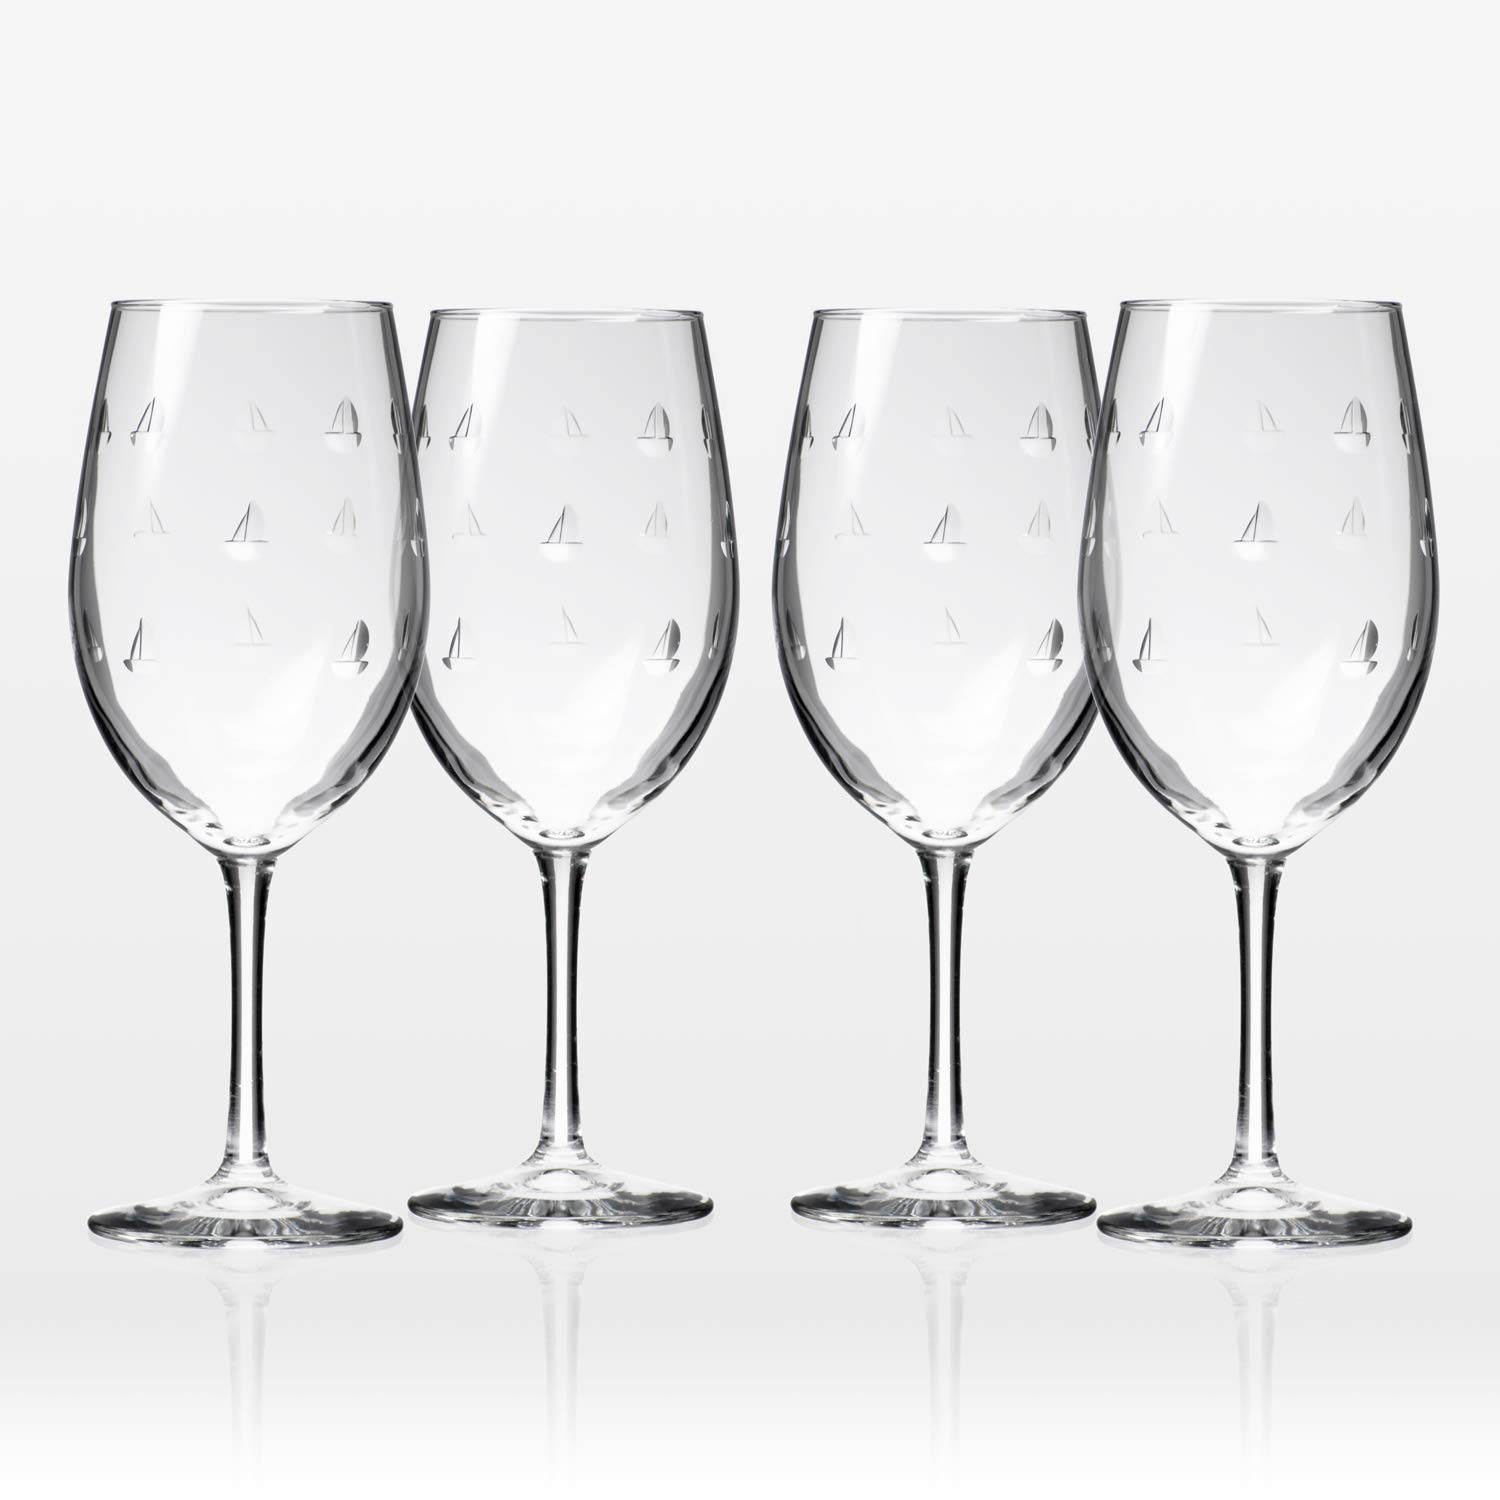 Rolf Glass Sailing All Purpose Wine Glass 18 Ounce - Set of 4 Large Wine Glasses - Lead Free Crystal Glass - Engraved Large Wine Glasses - Made in the USA